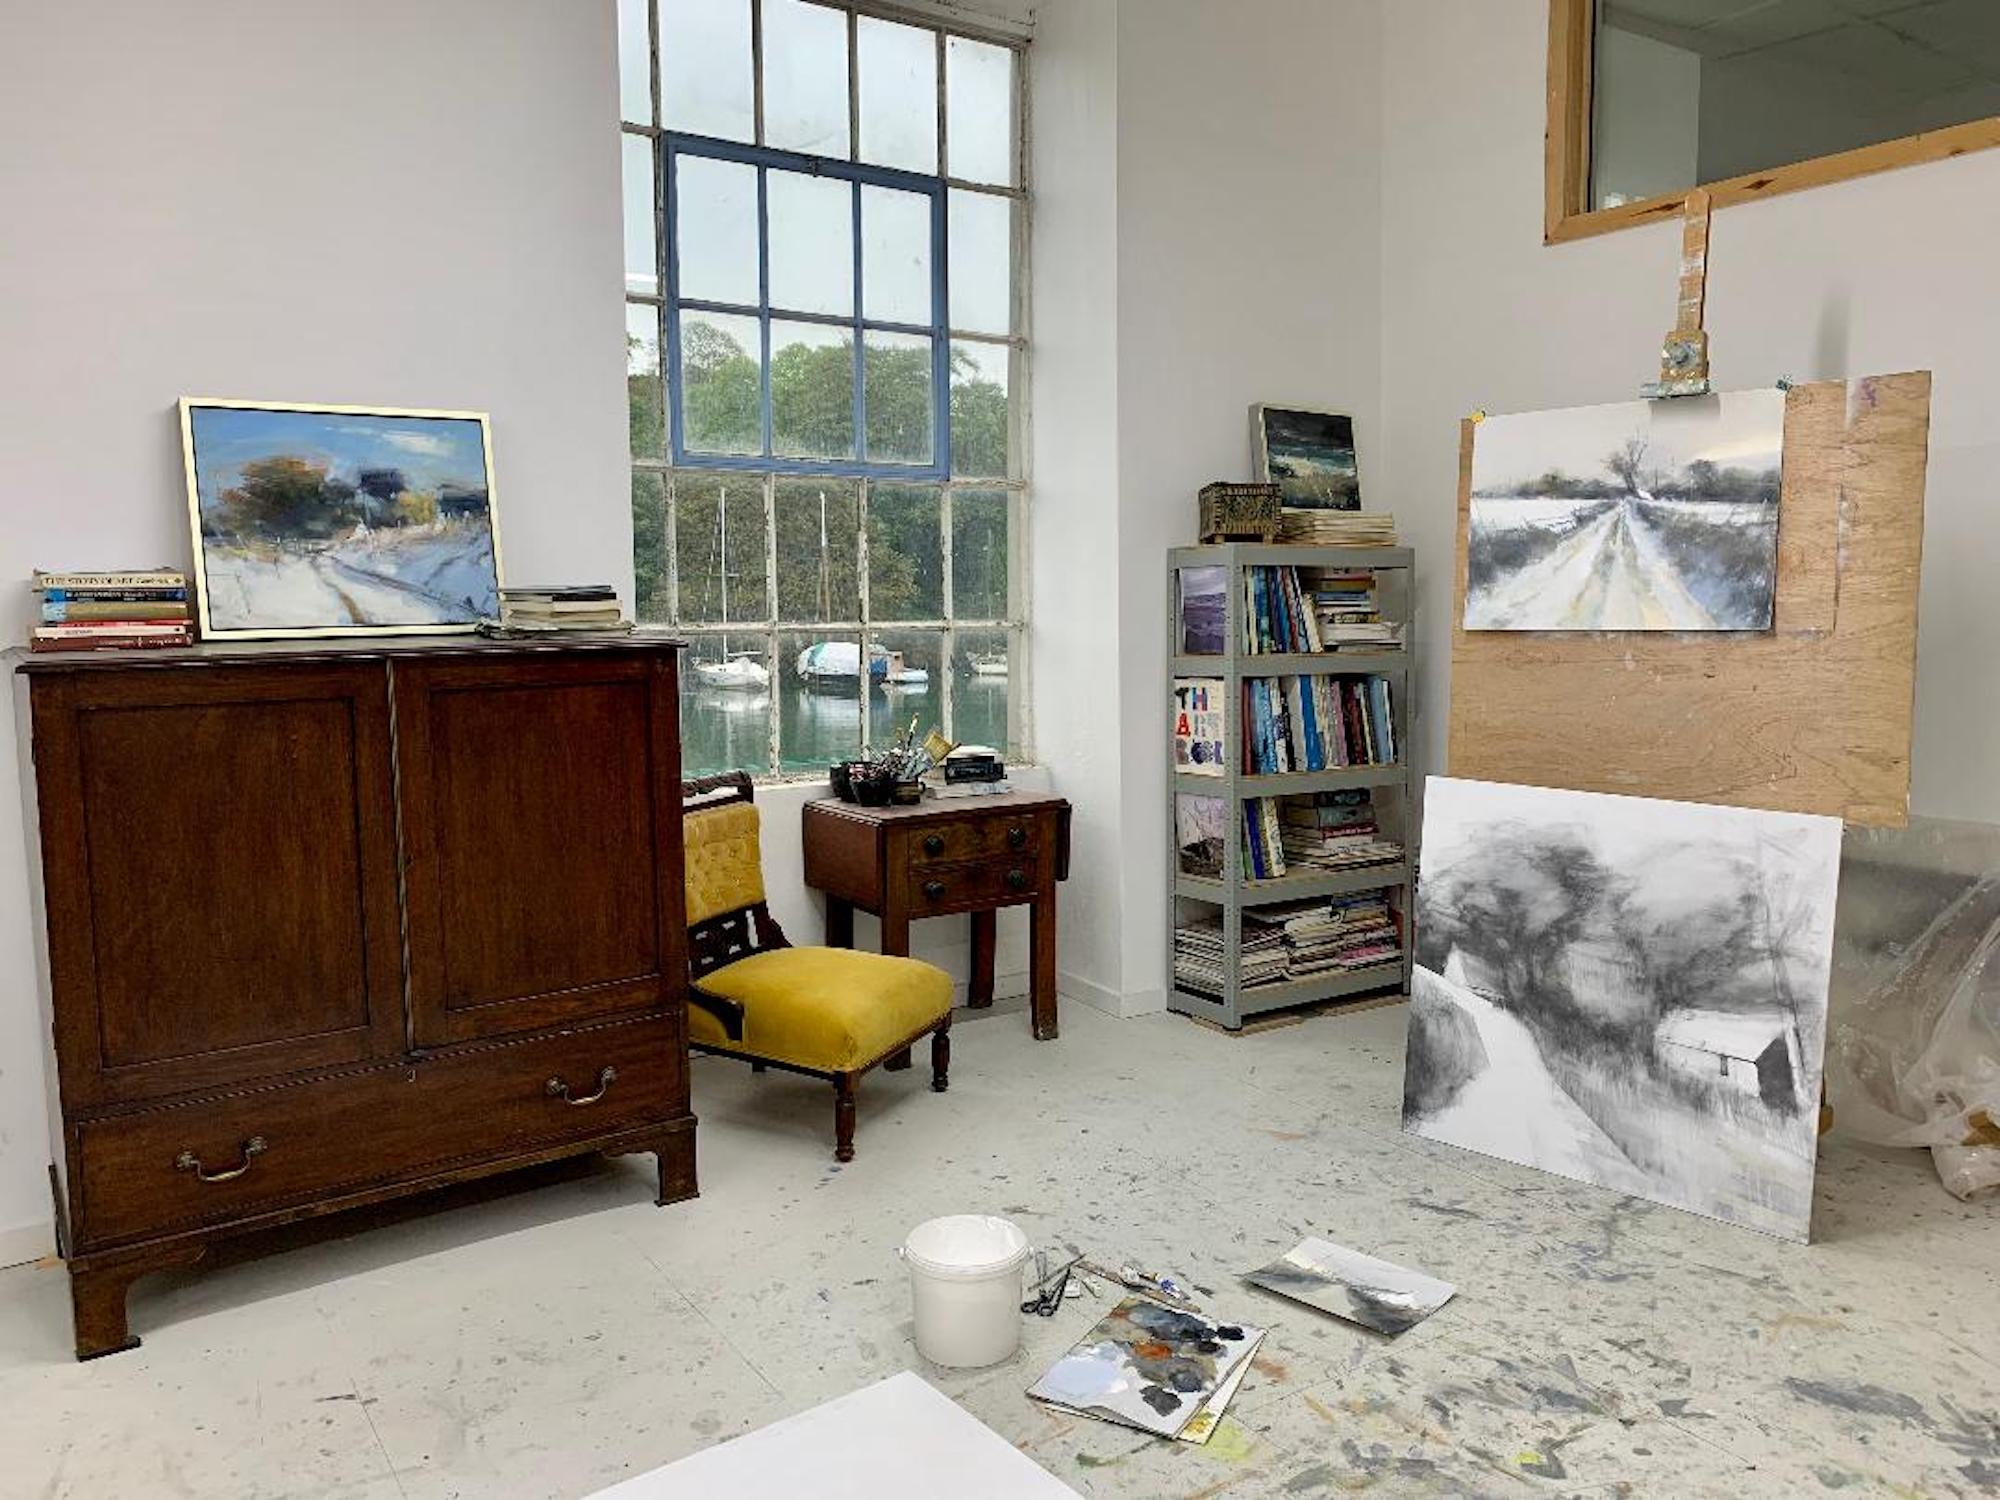 My riverside studio at Grays Wharf